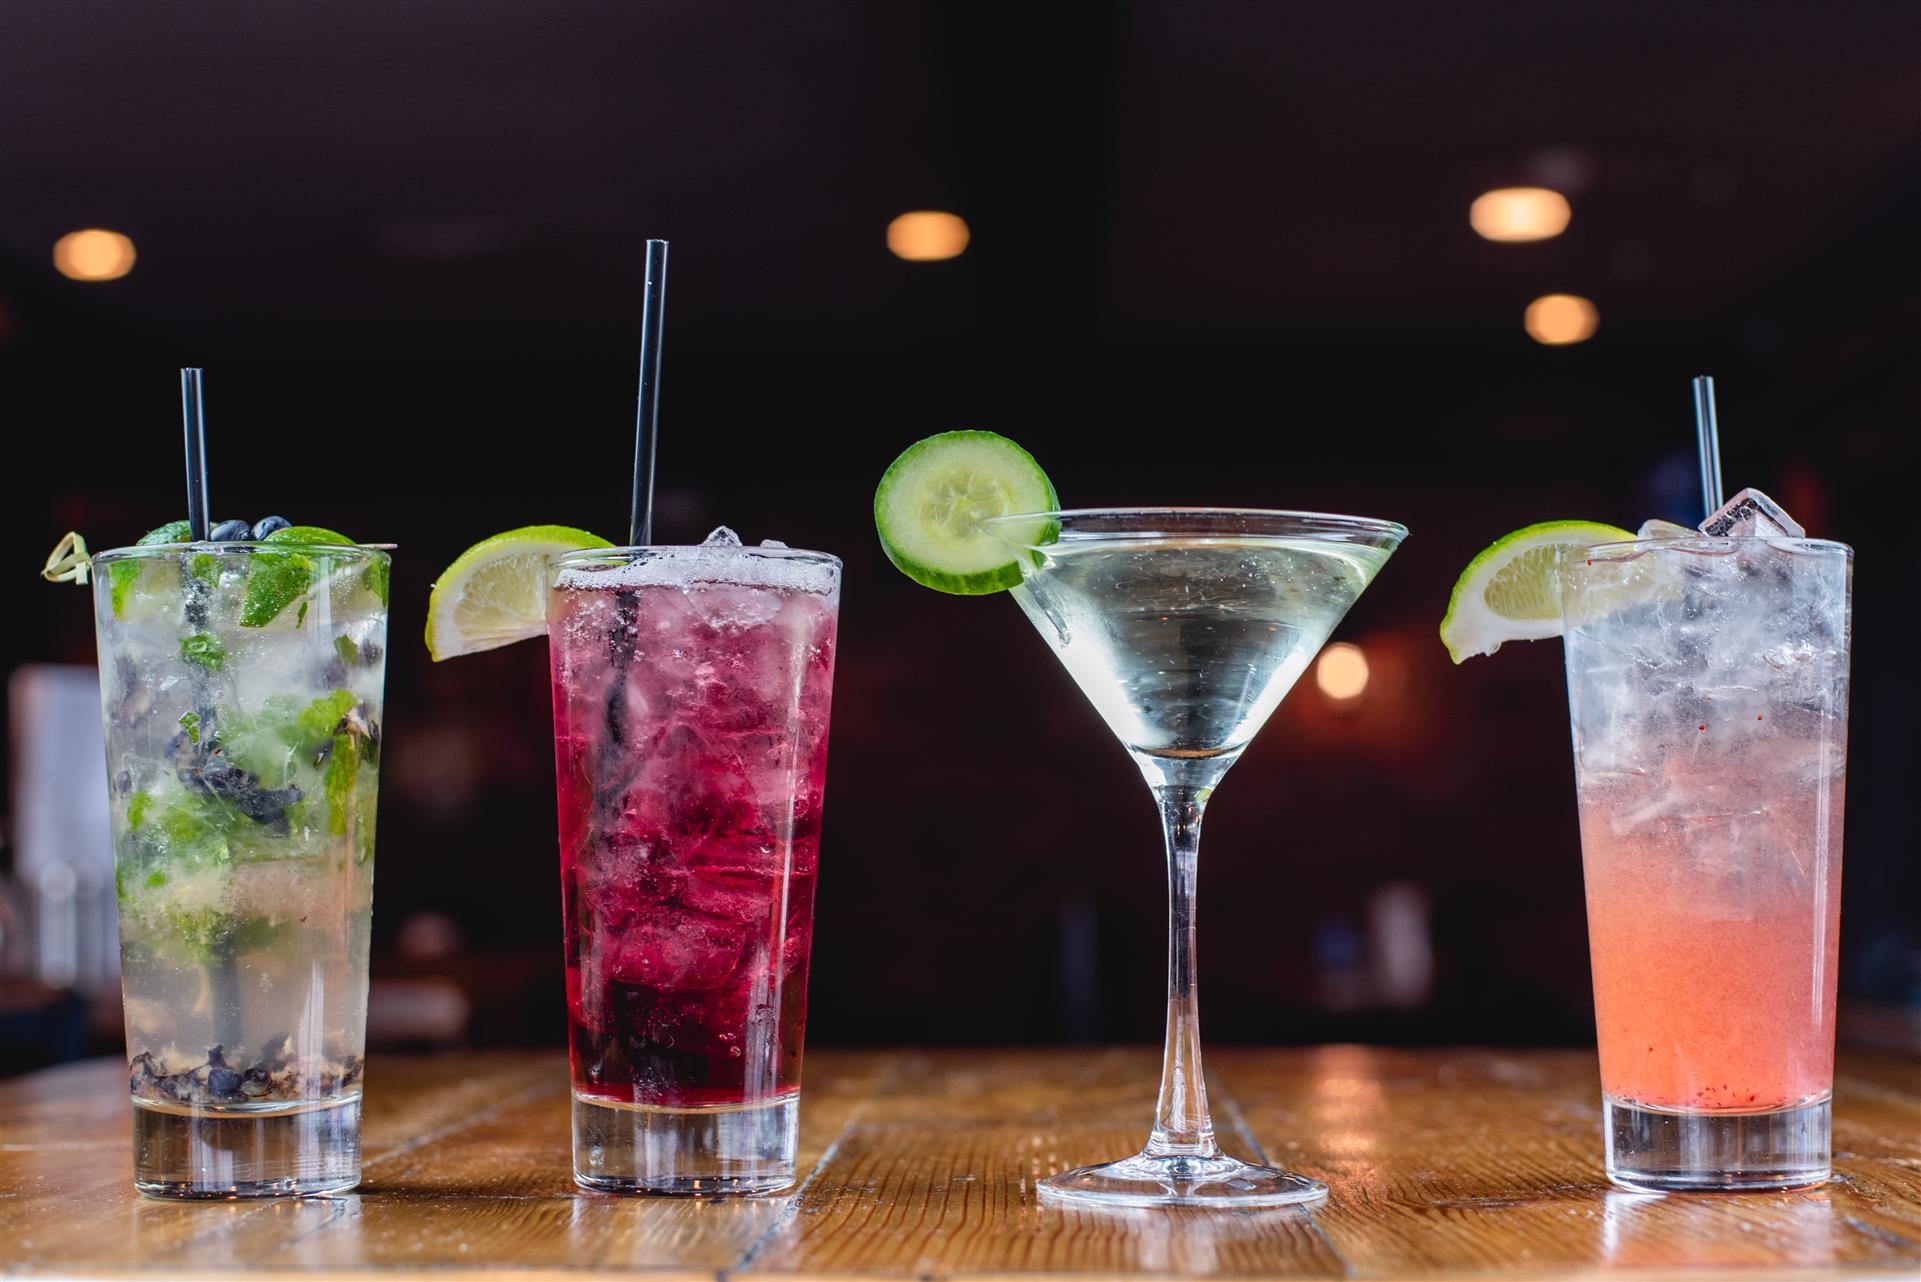 a mojito, martini, and two other mixed drinks